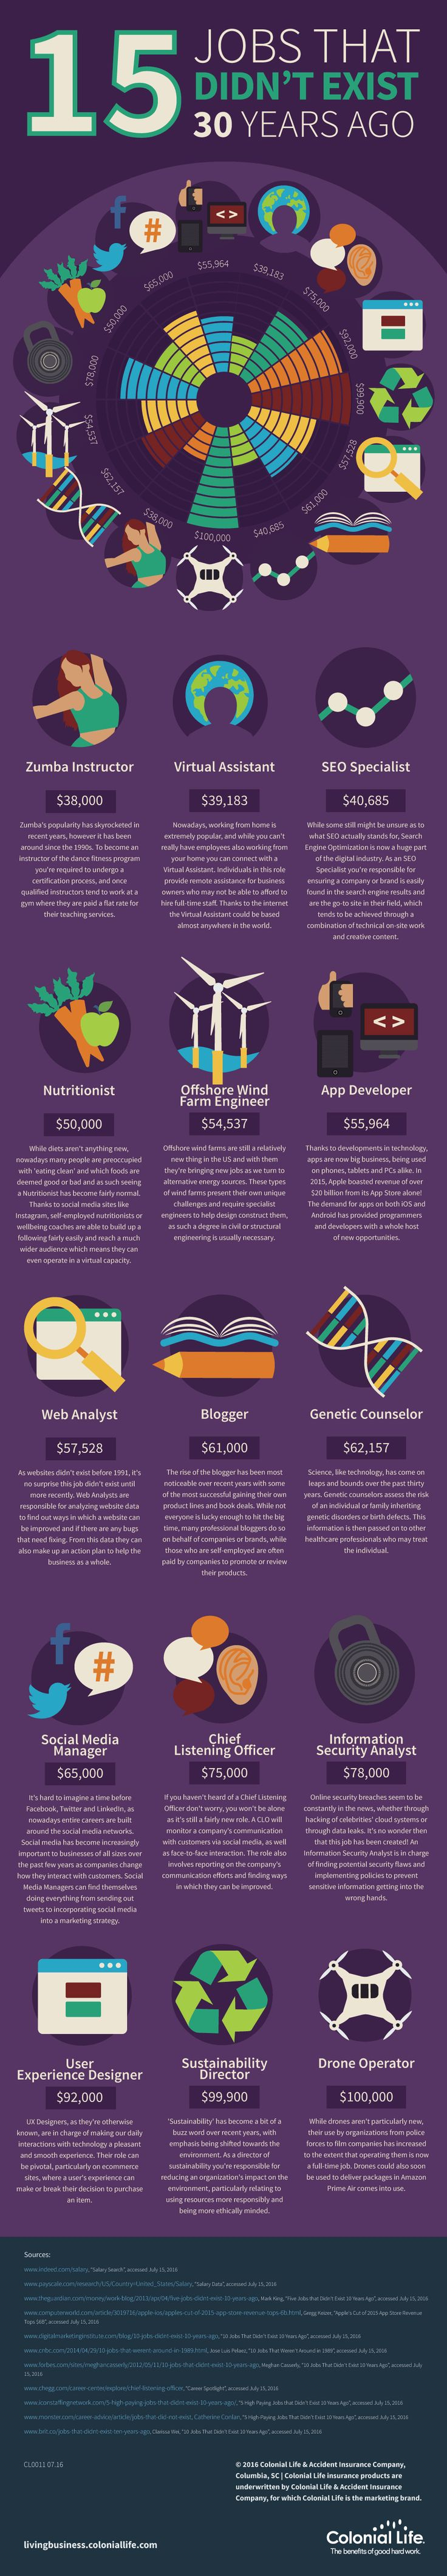 17 best ideas about midlife career change how to 15 jobs that didn t exist 30 years ago infographic